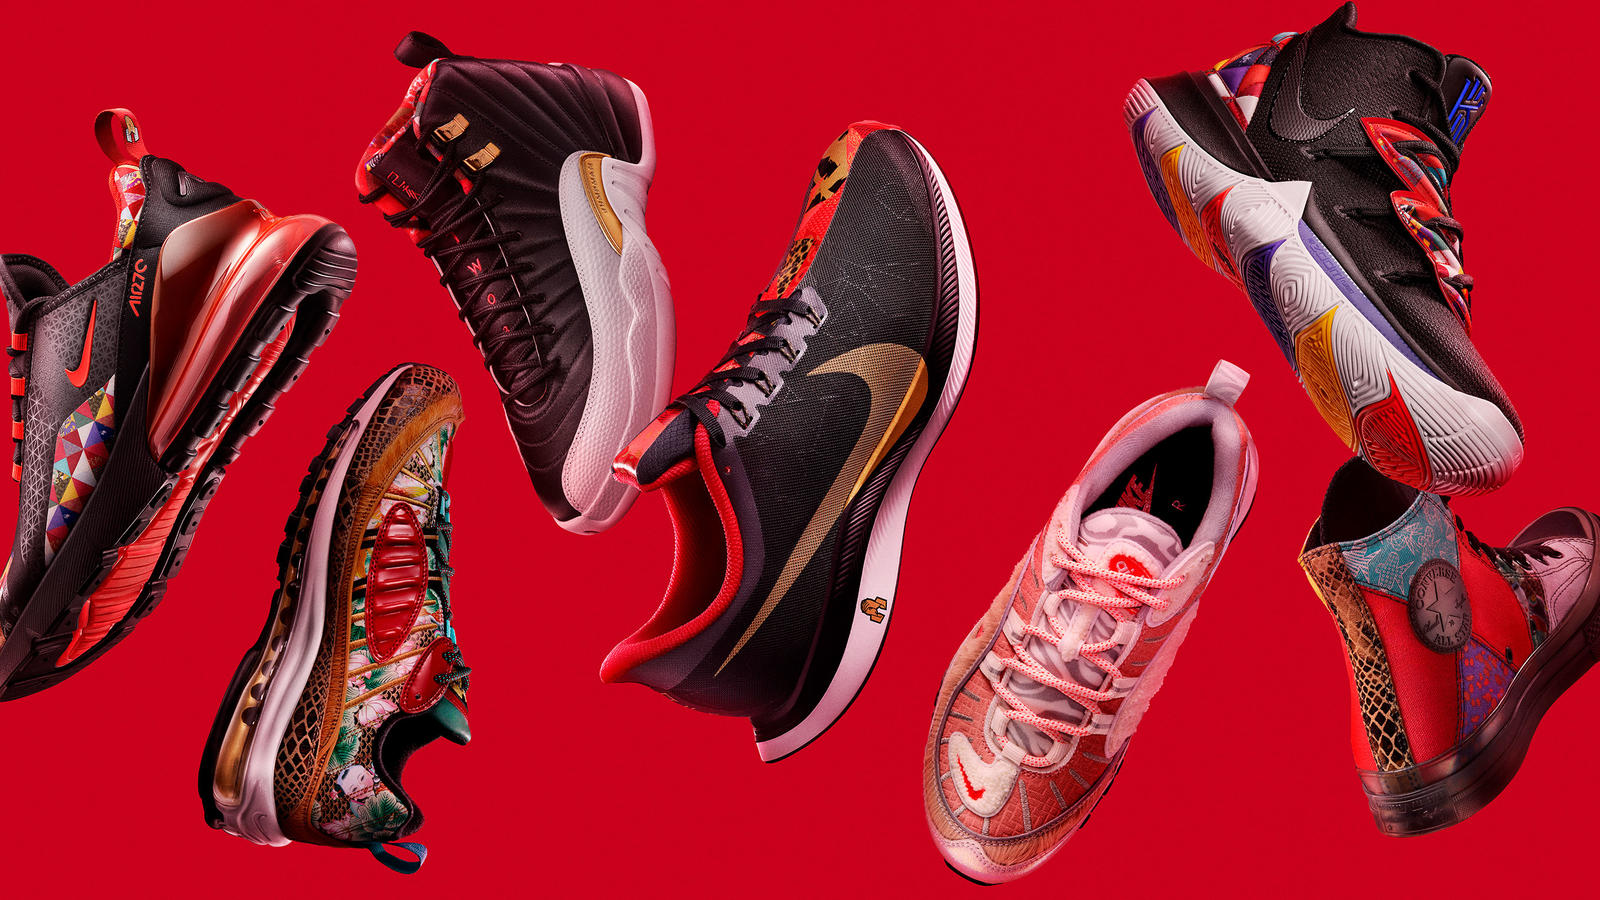 3ad65fbe451774 The Year of the Pig Chinese New Year Collection Brings Together 12 Years of  Nike CNY